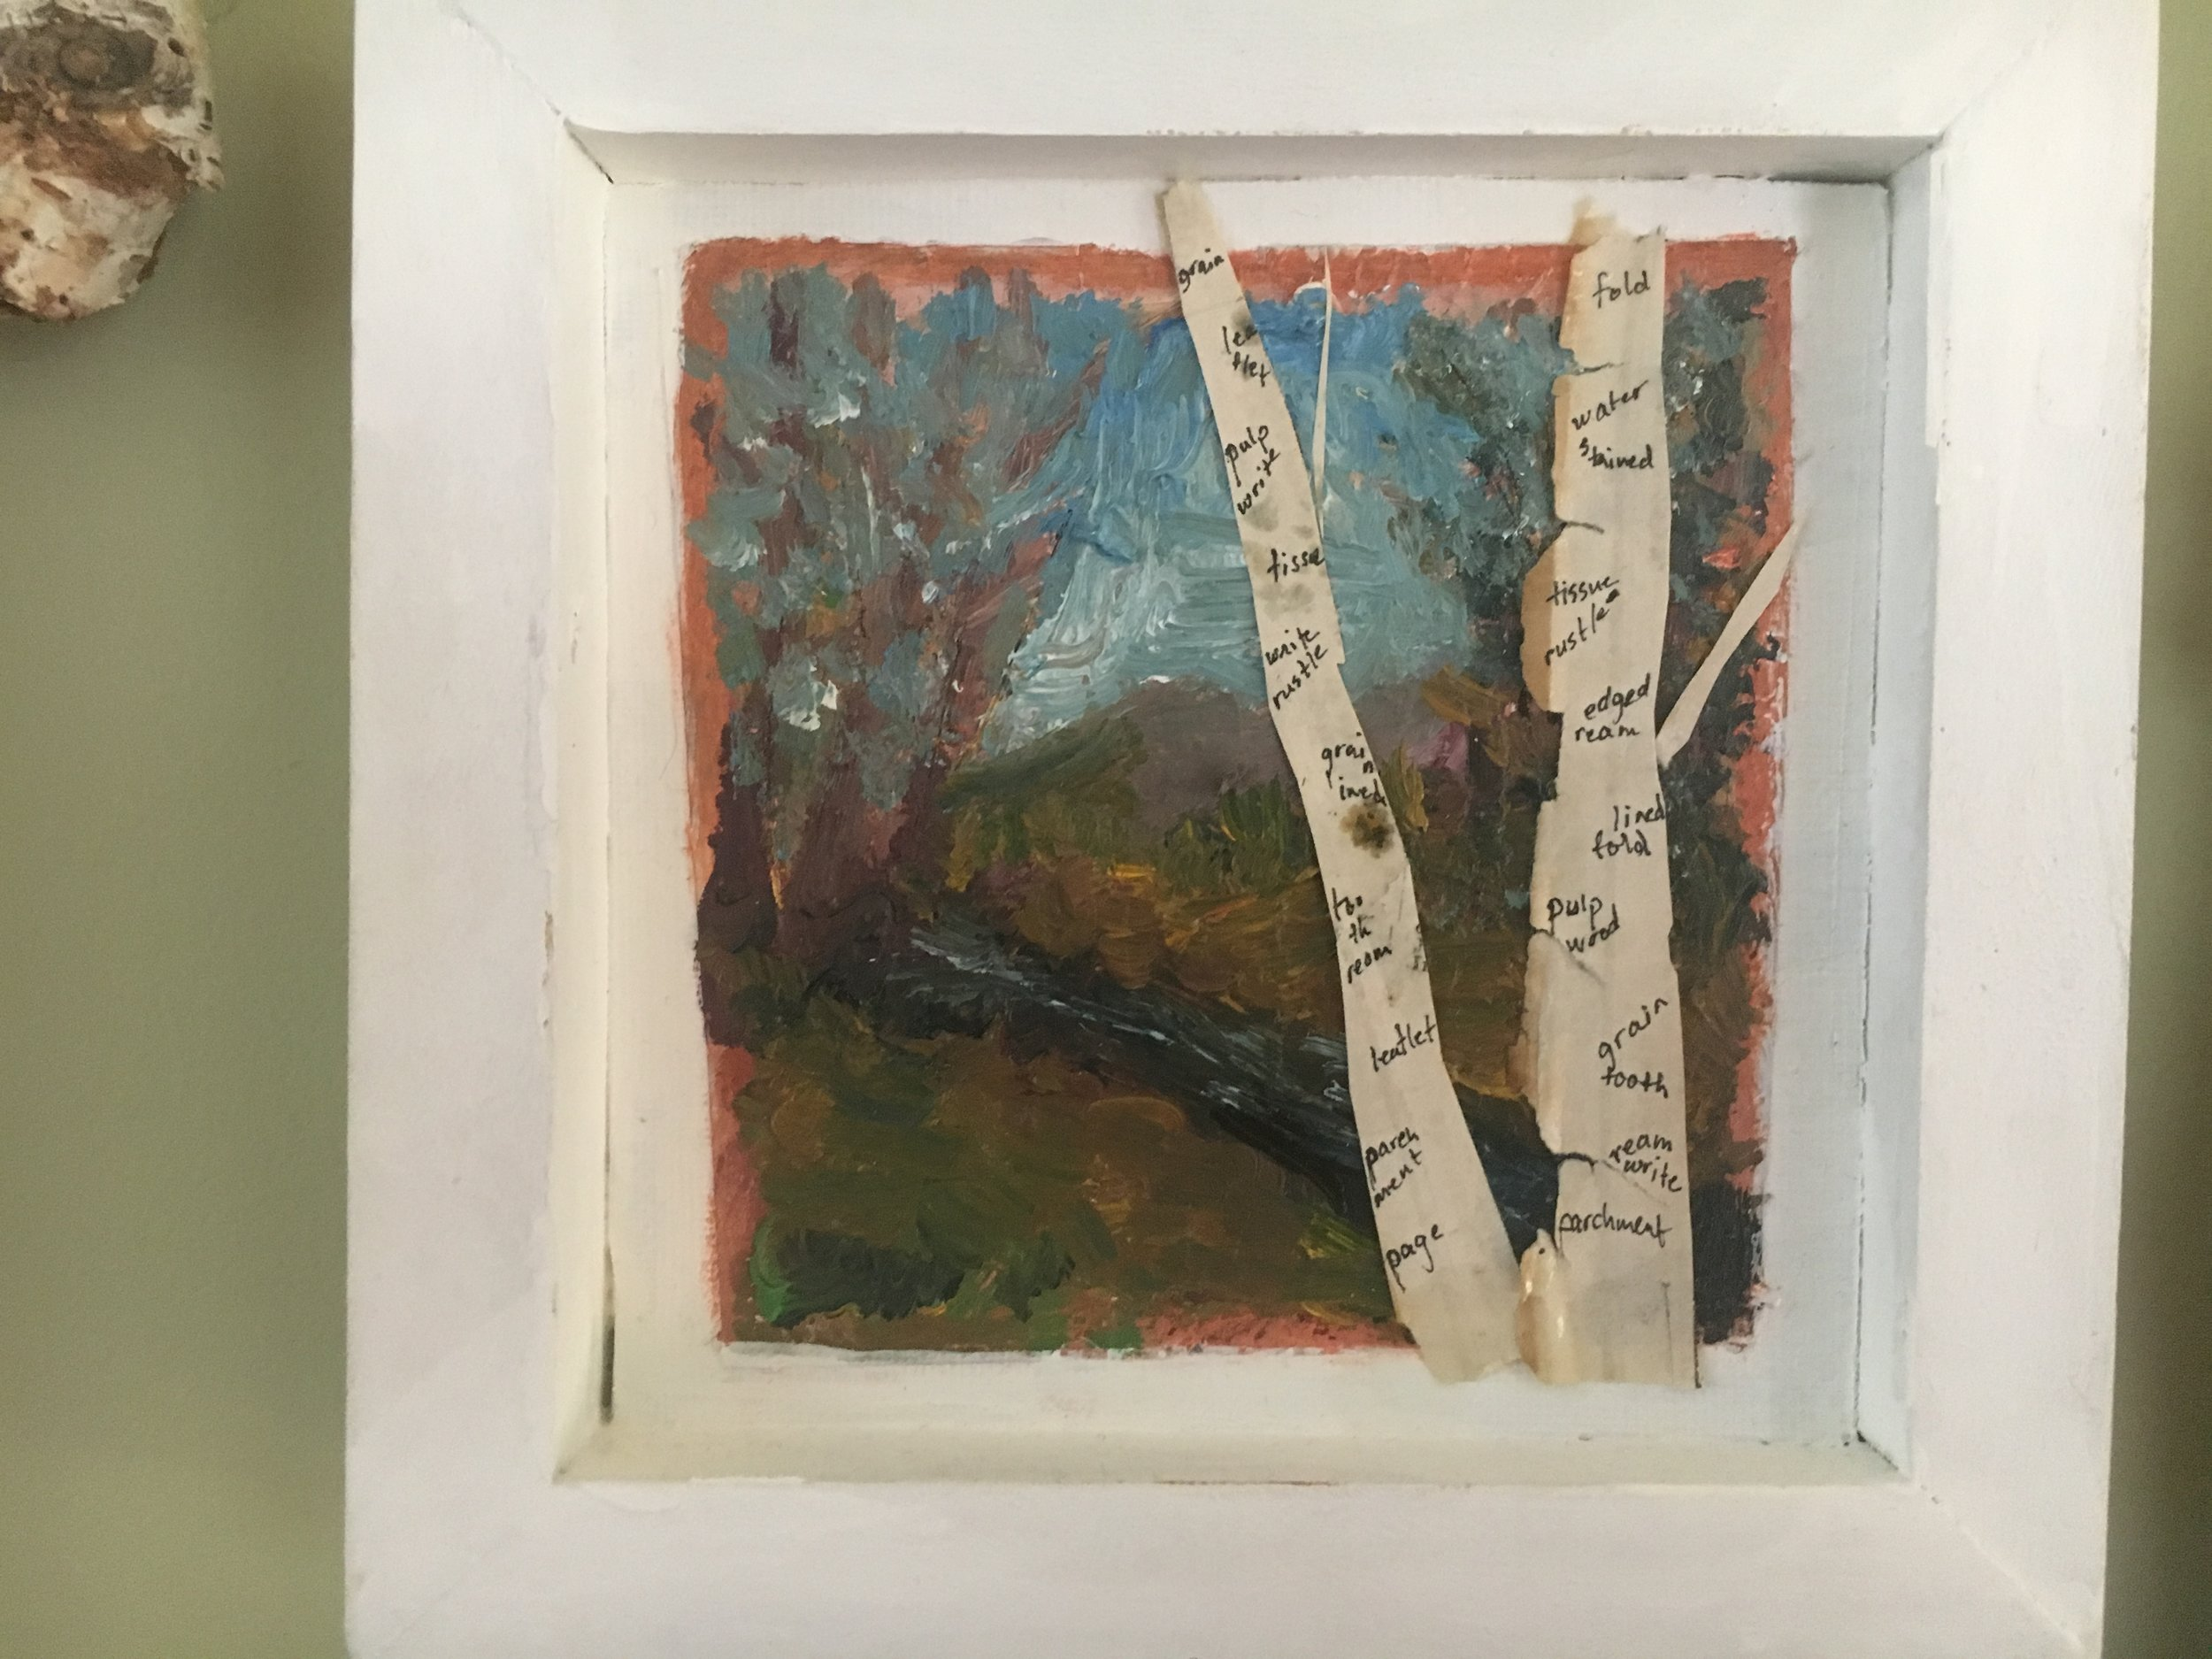 Birch in a Box